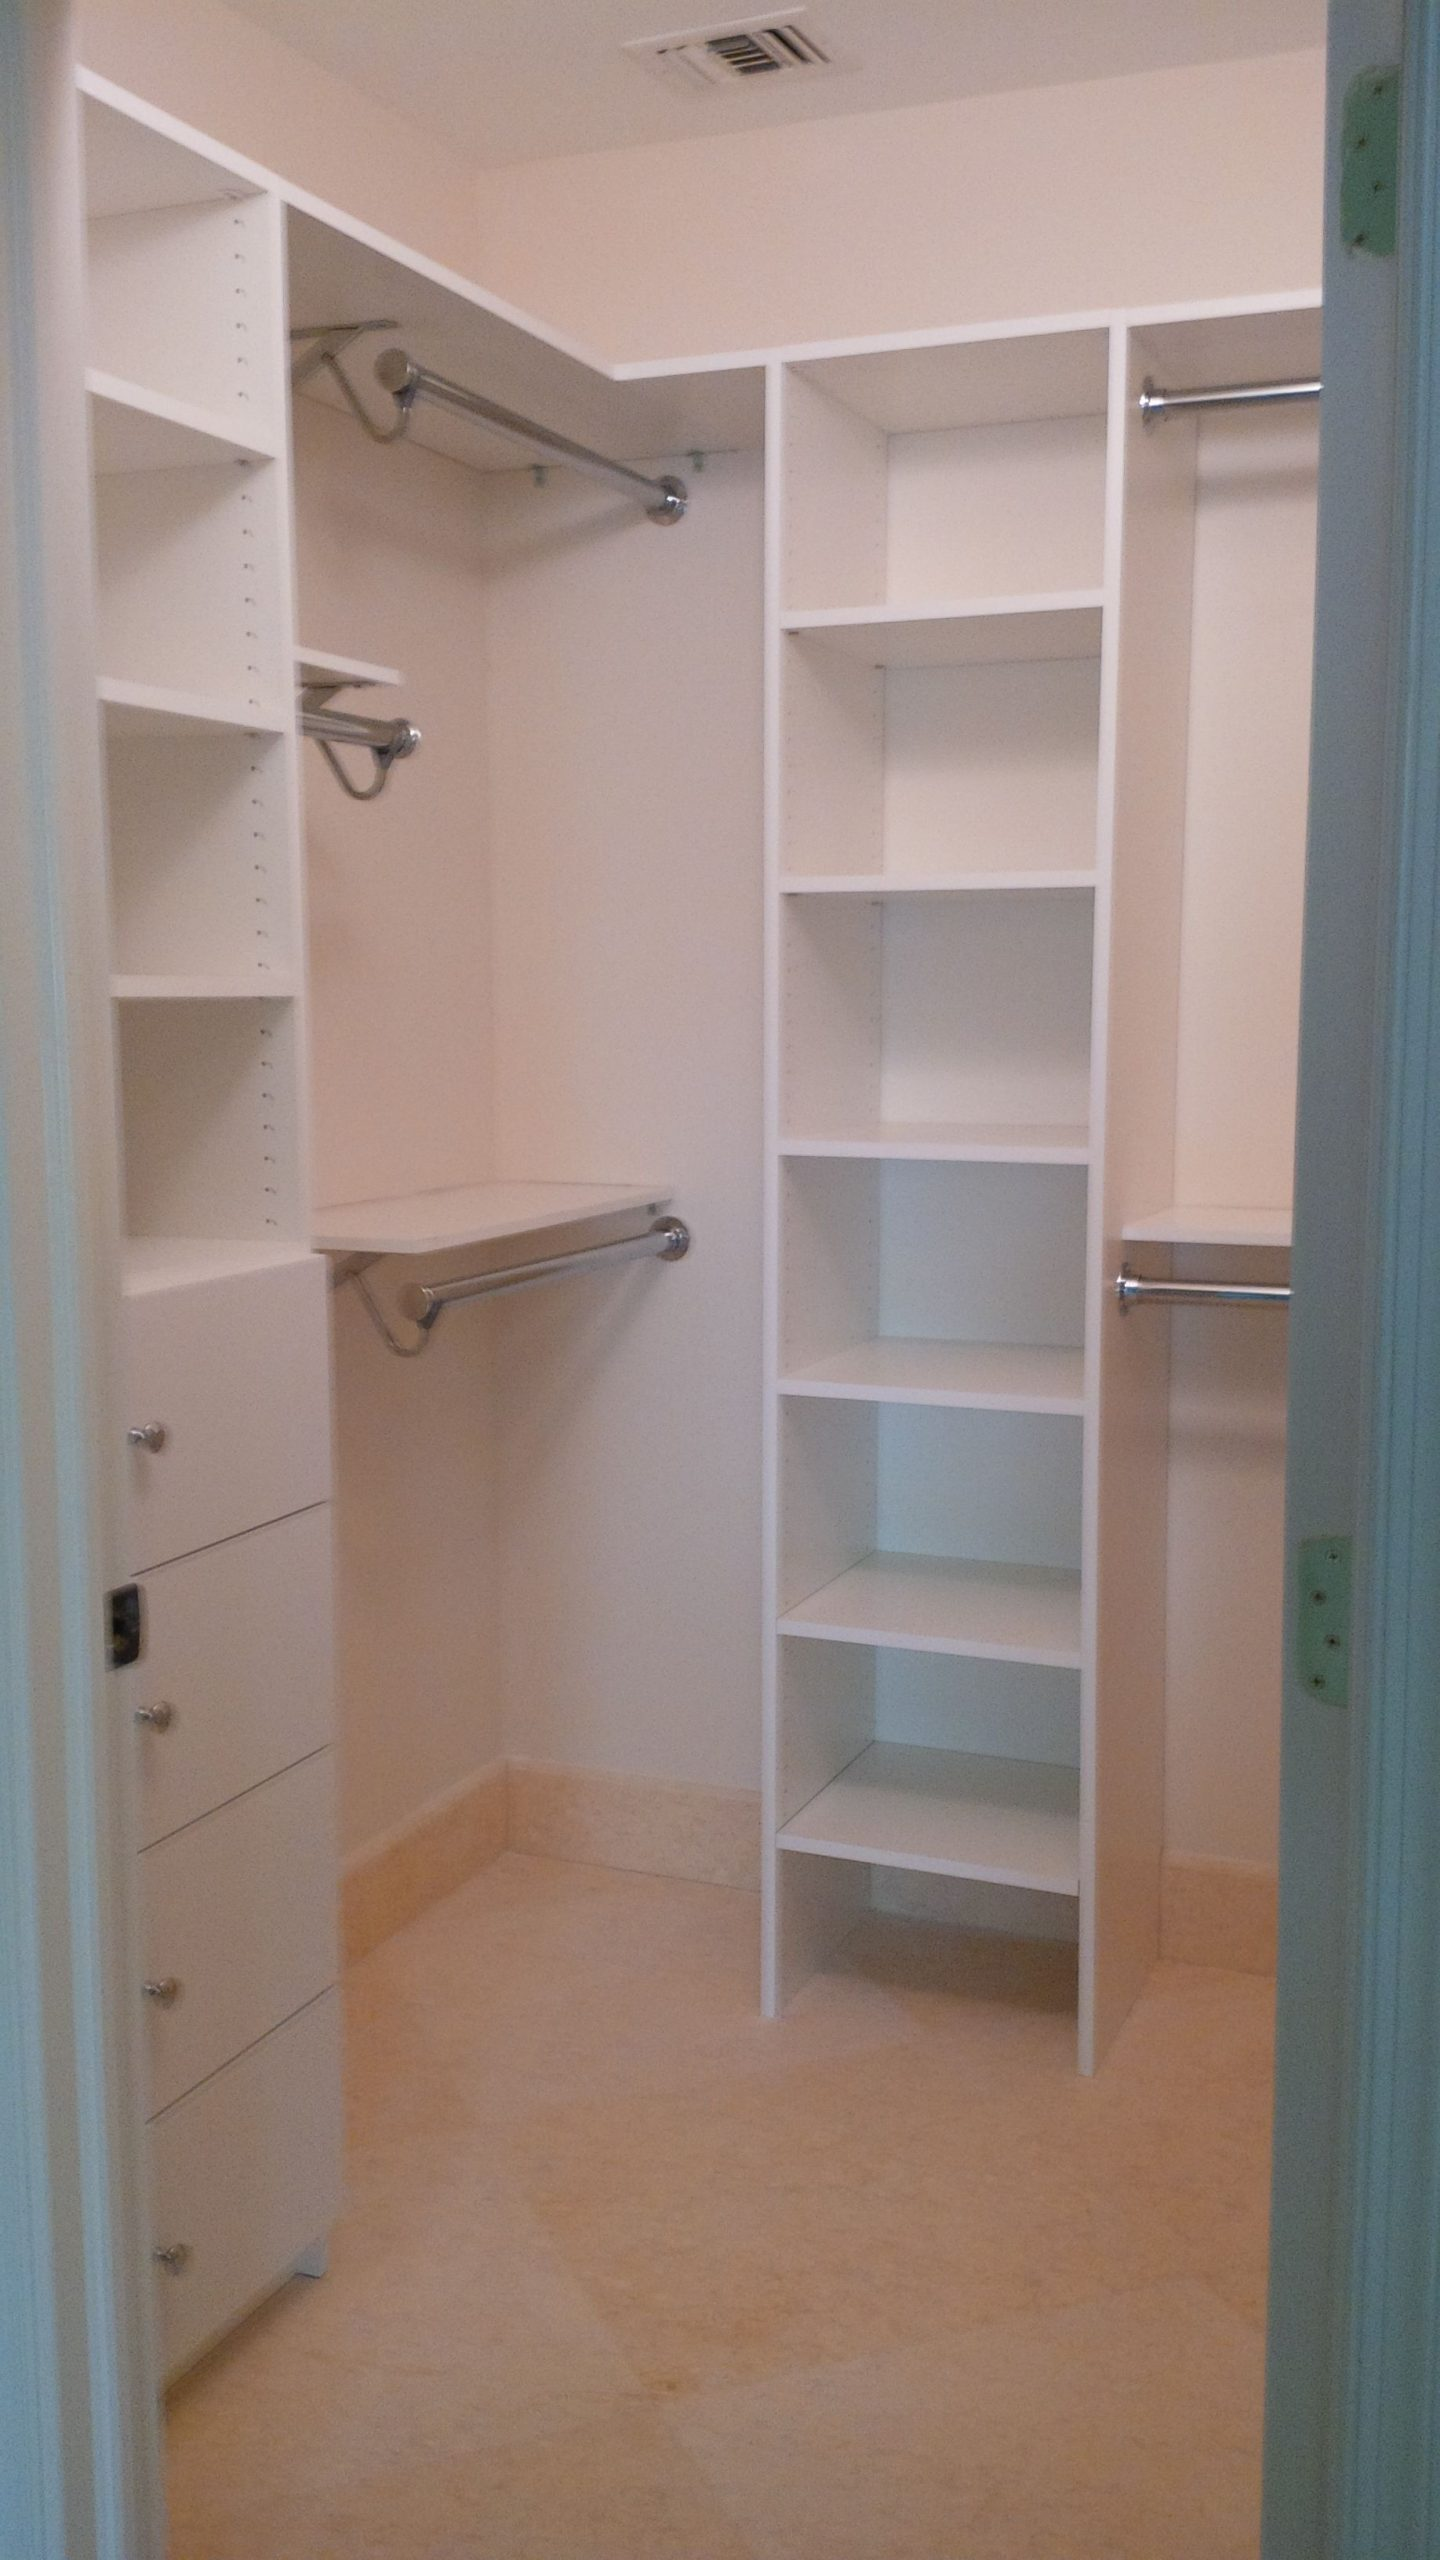 Custom Melamine Closet System combined with a Shelf and Rod Closet System